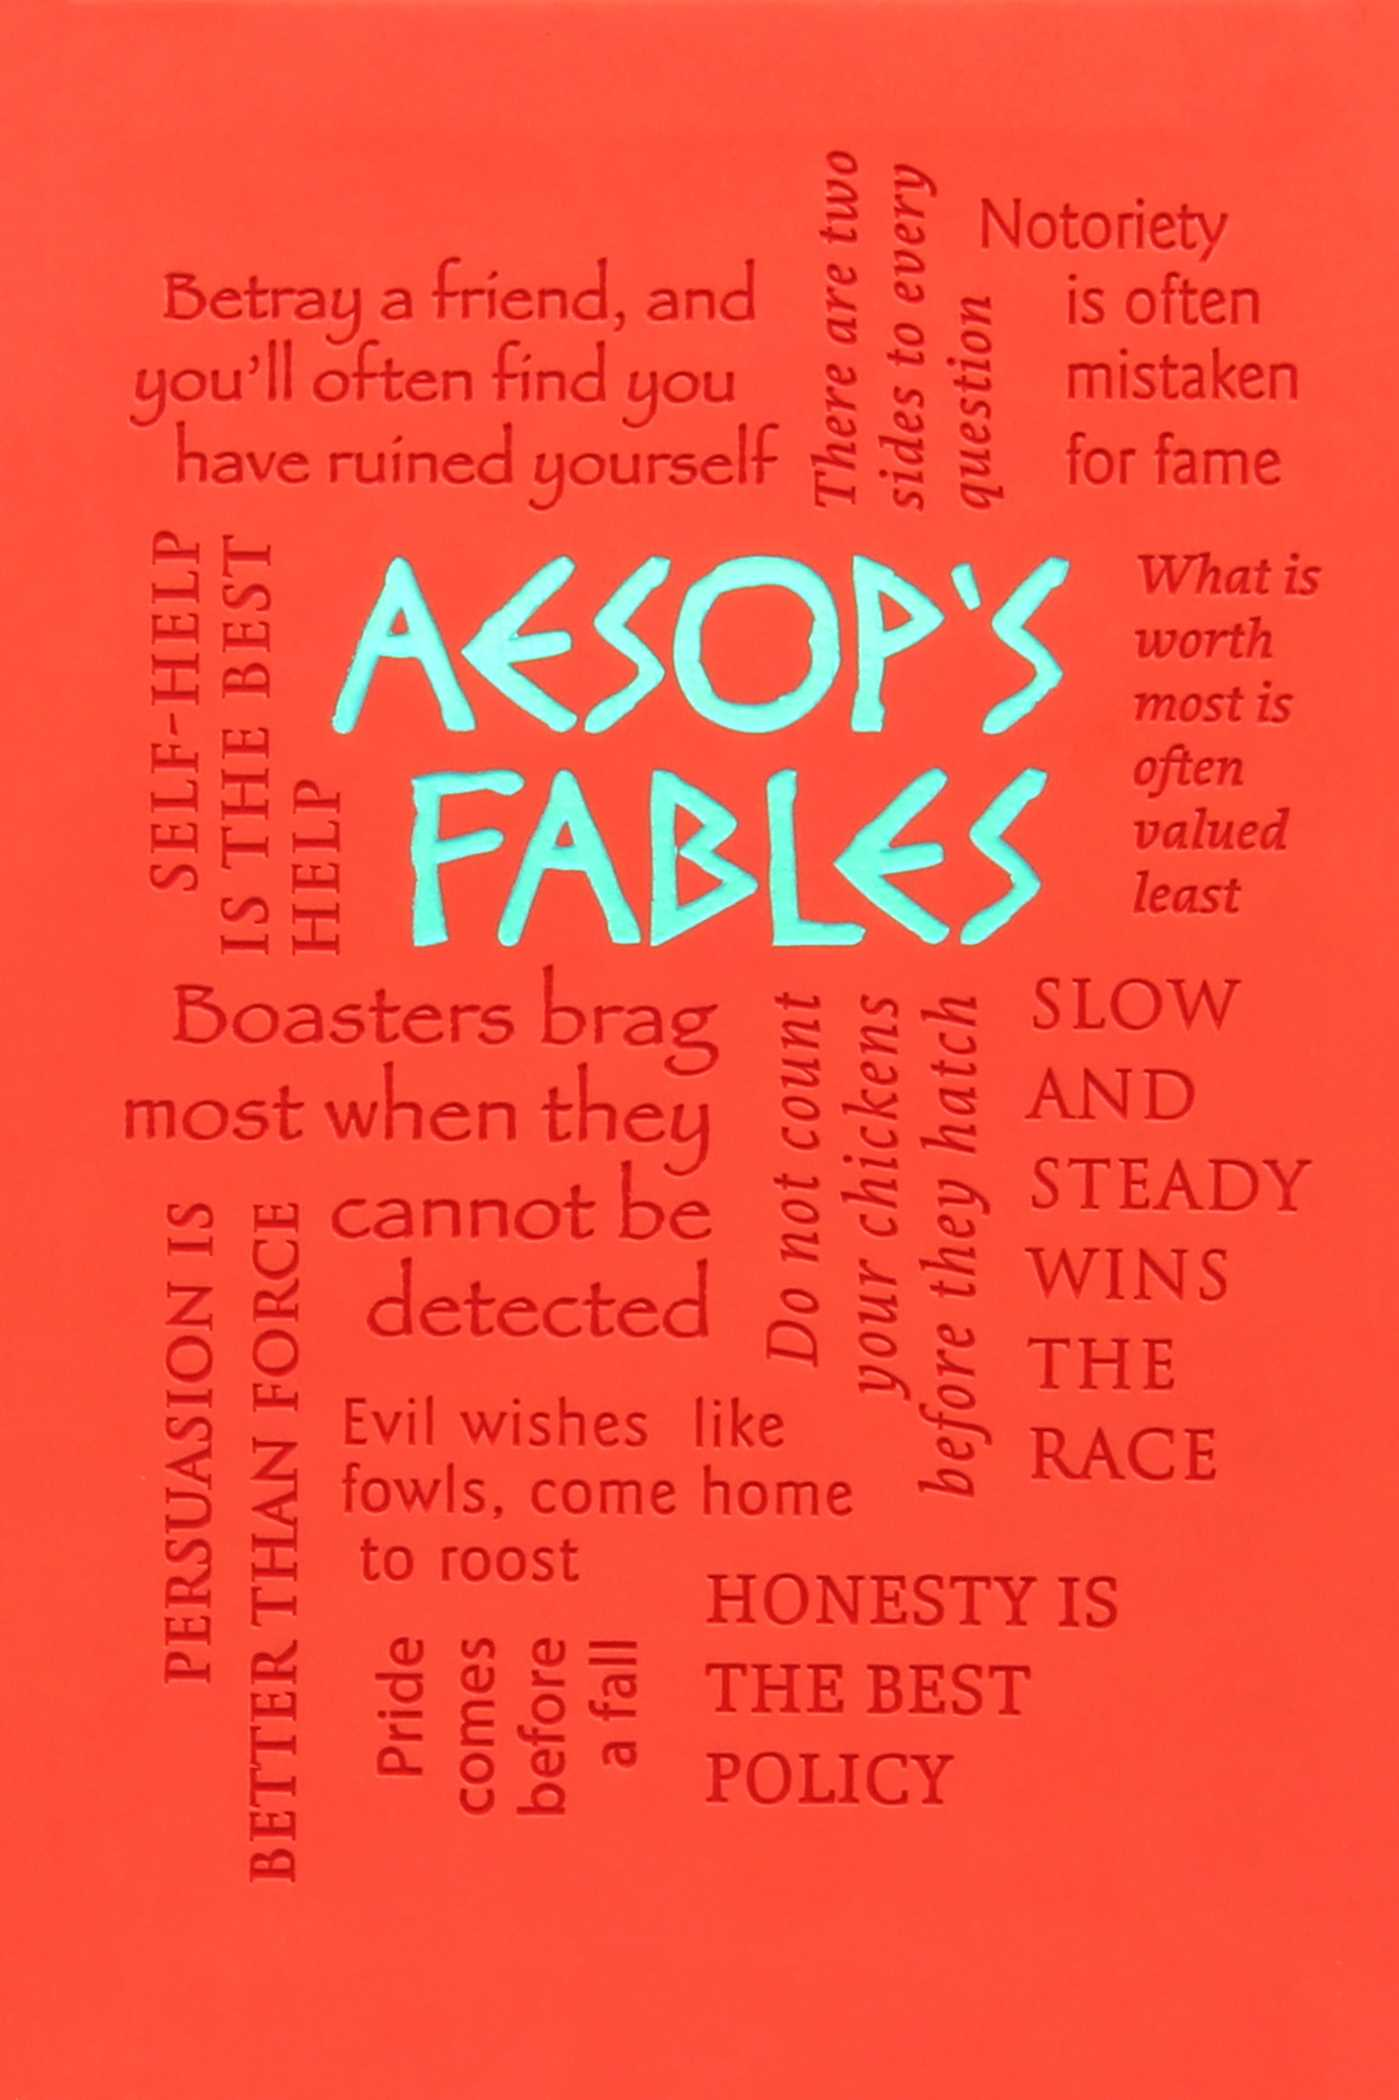 A List Of Fables And Their Morals aesop's fables | bookaesop, arthur rackham | official